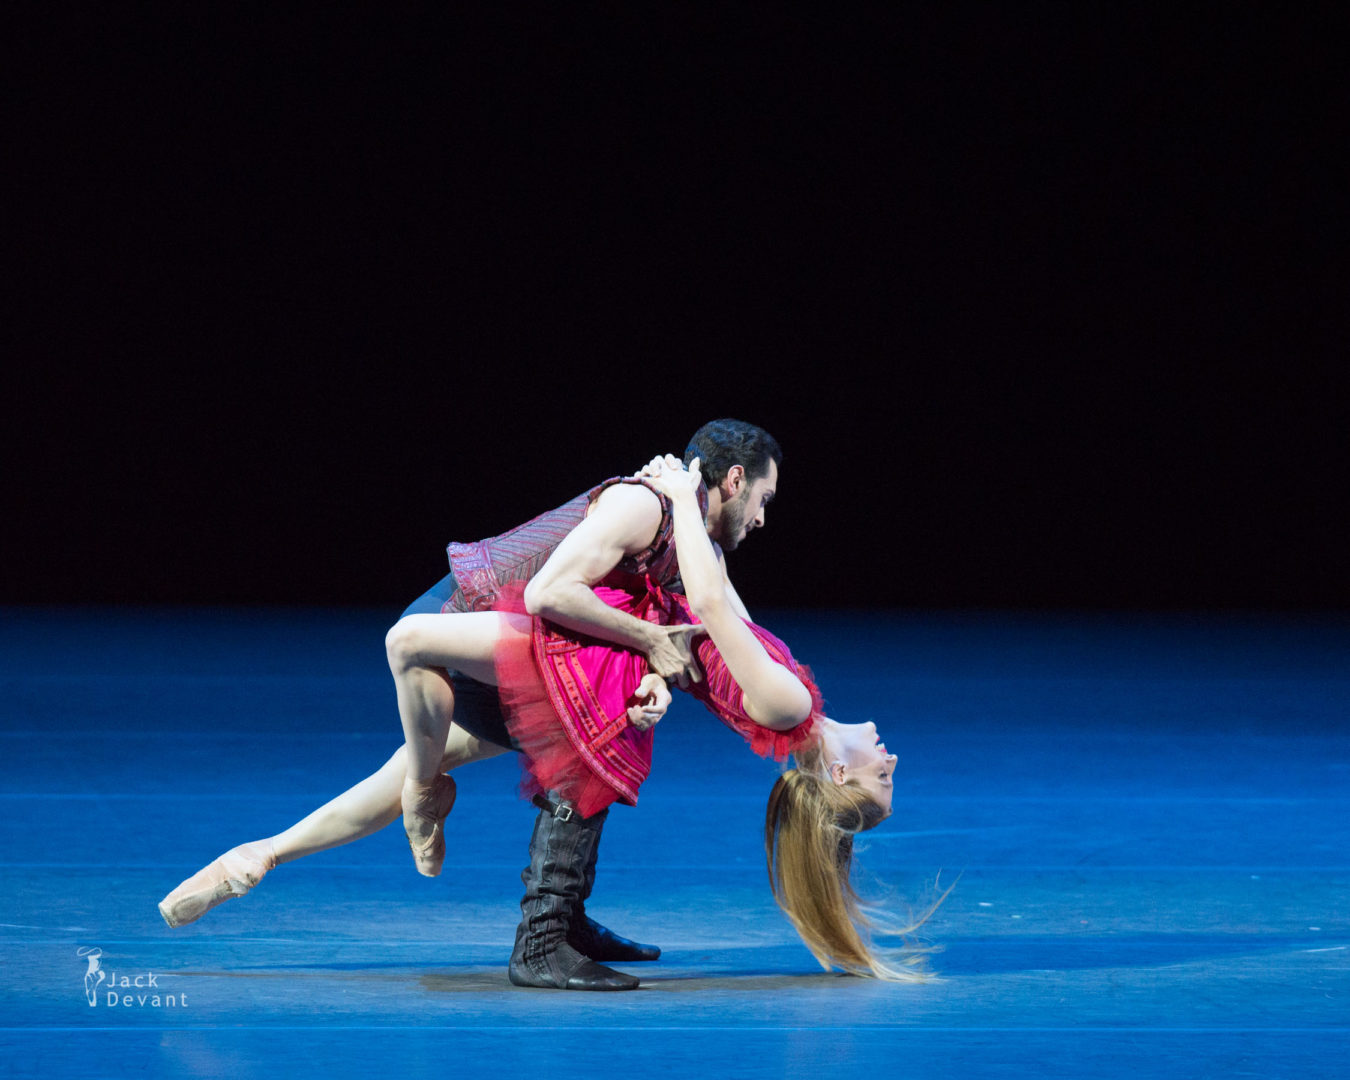 Virna Toppi and Christian Fagetti in duet from Cinderella, music by Sergei Prokofiev, choreography by Mauro Bigonzetti